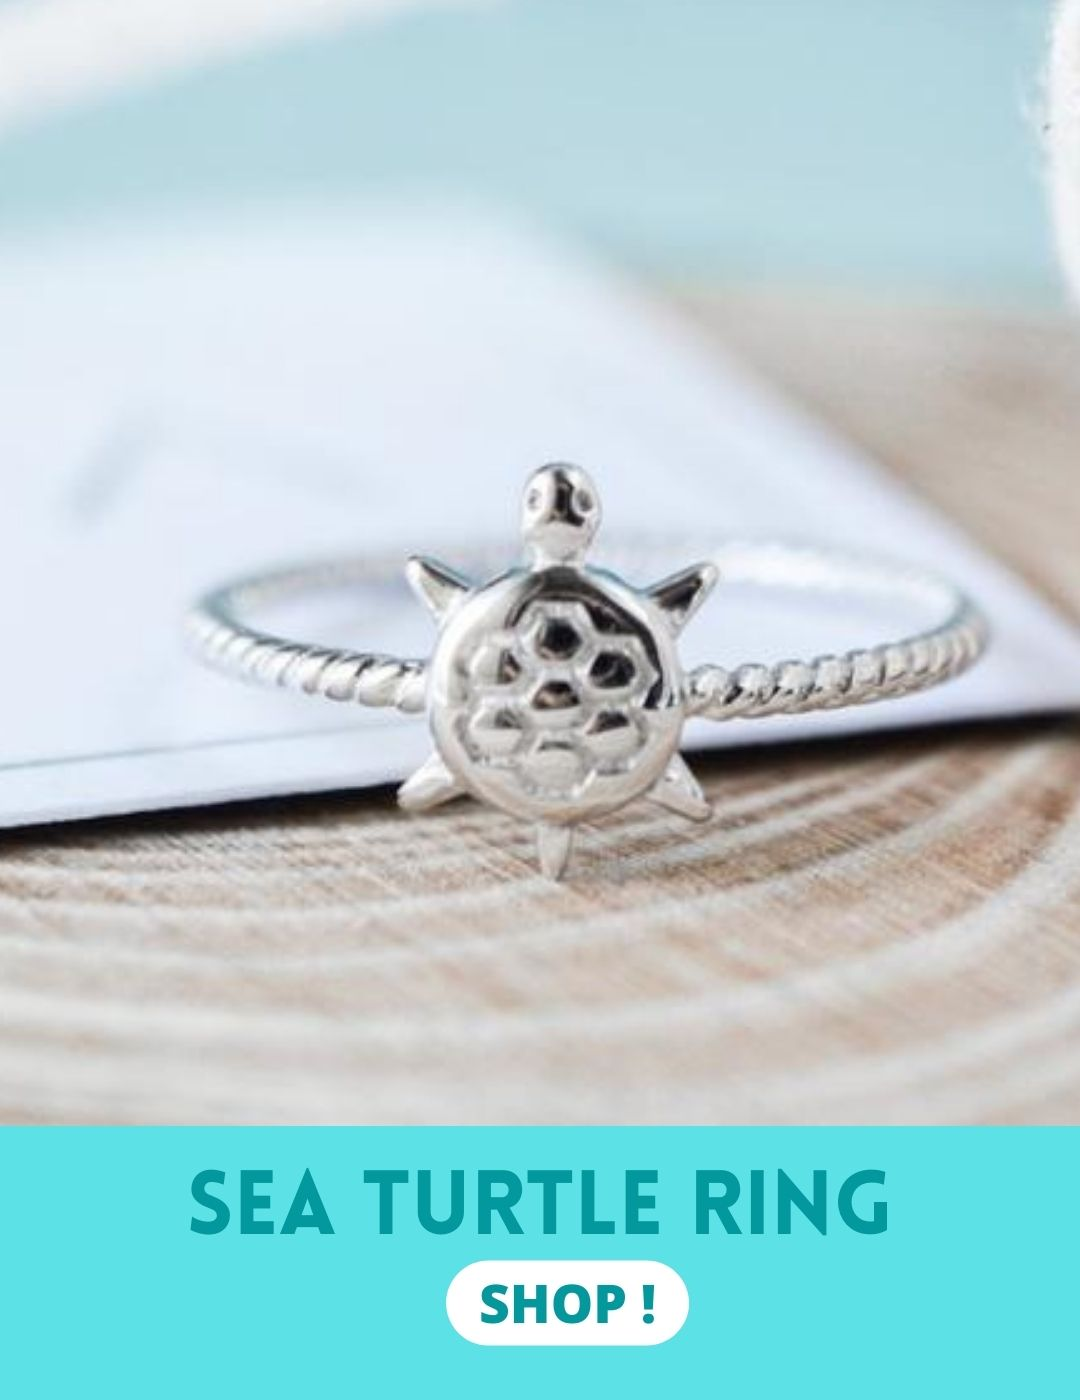 Sea turtle ring meaning